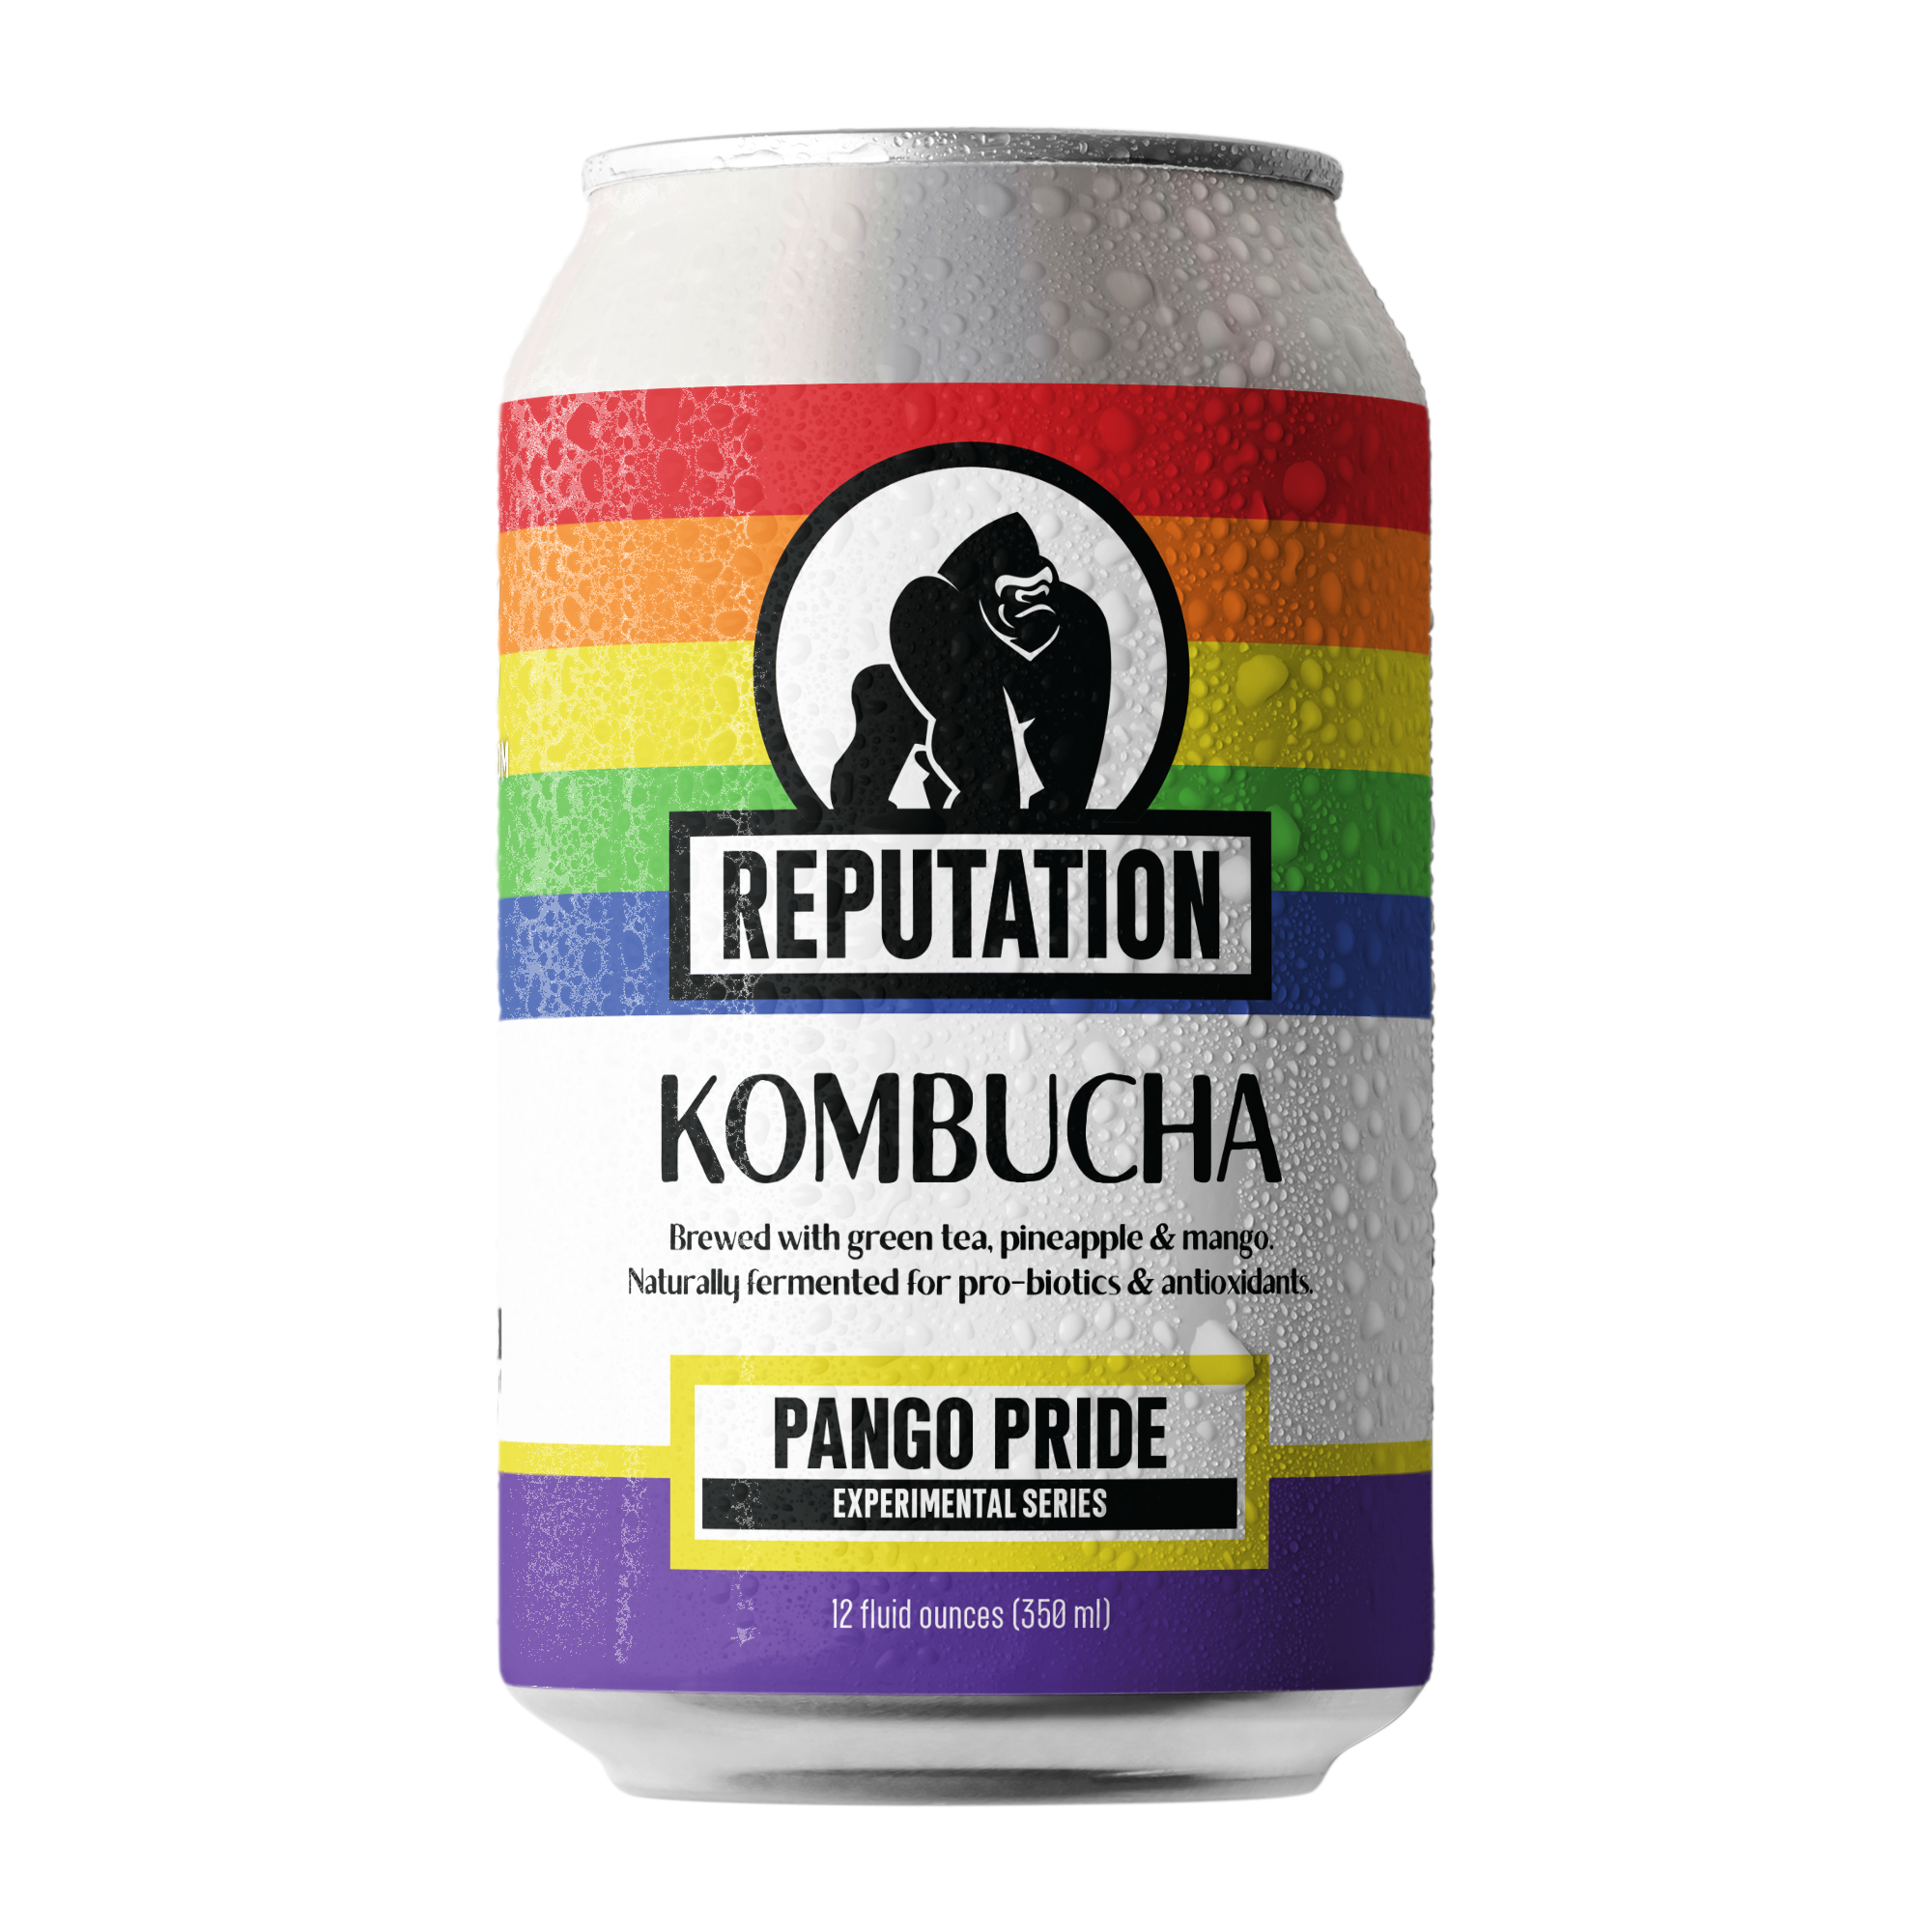 PANGO Pride Kombucha - Reputation Beverage